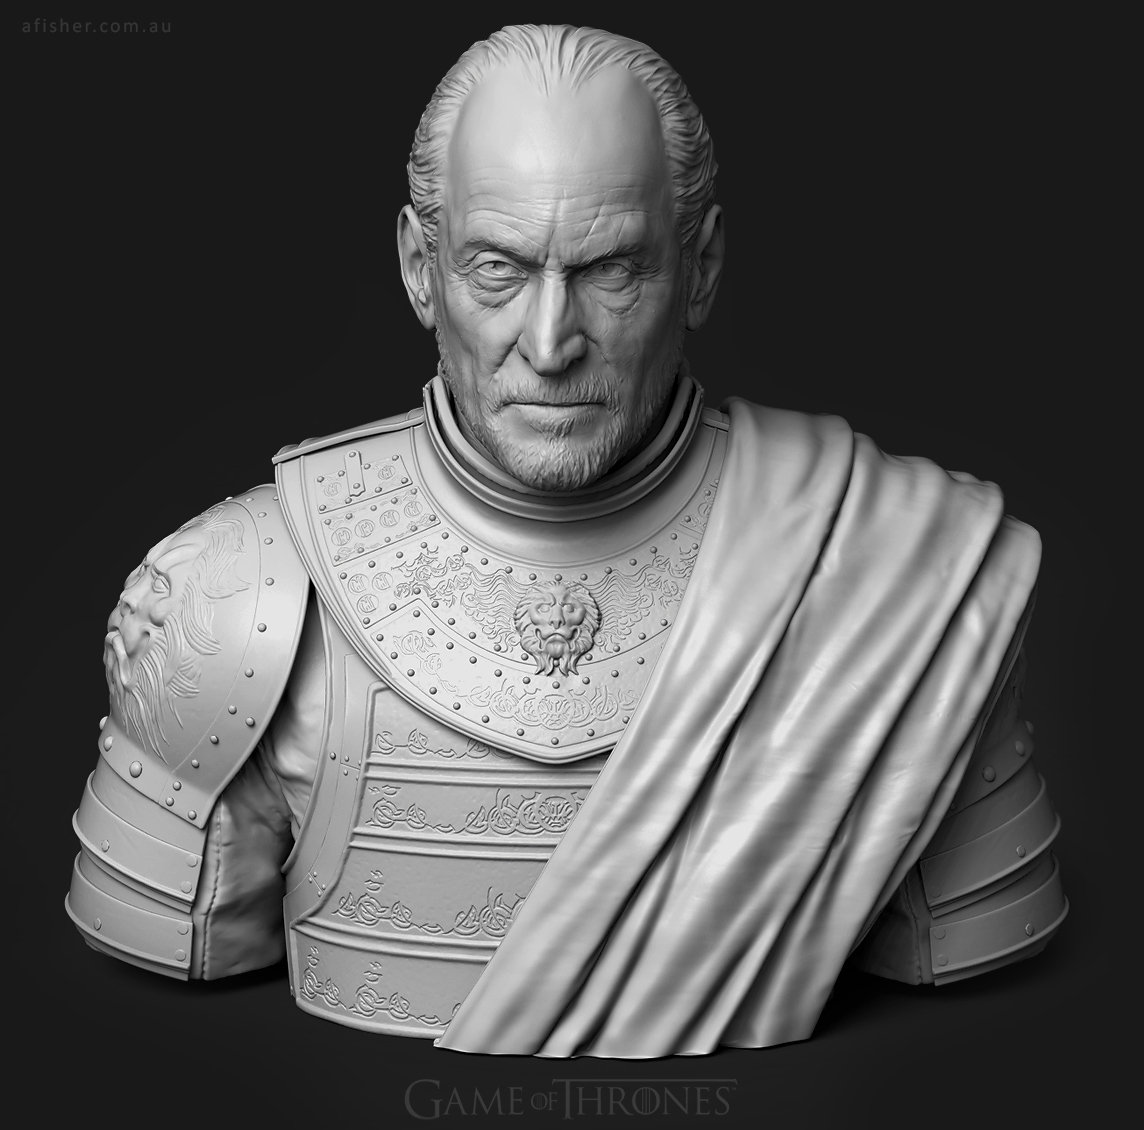 Afisher tywin render